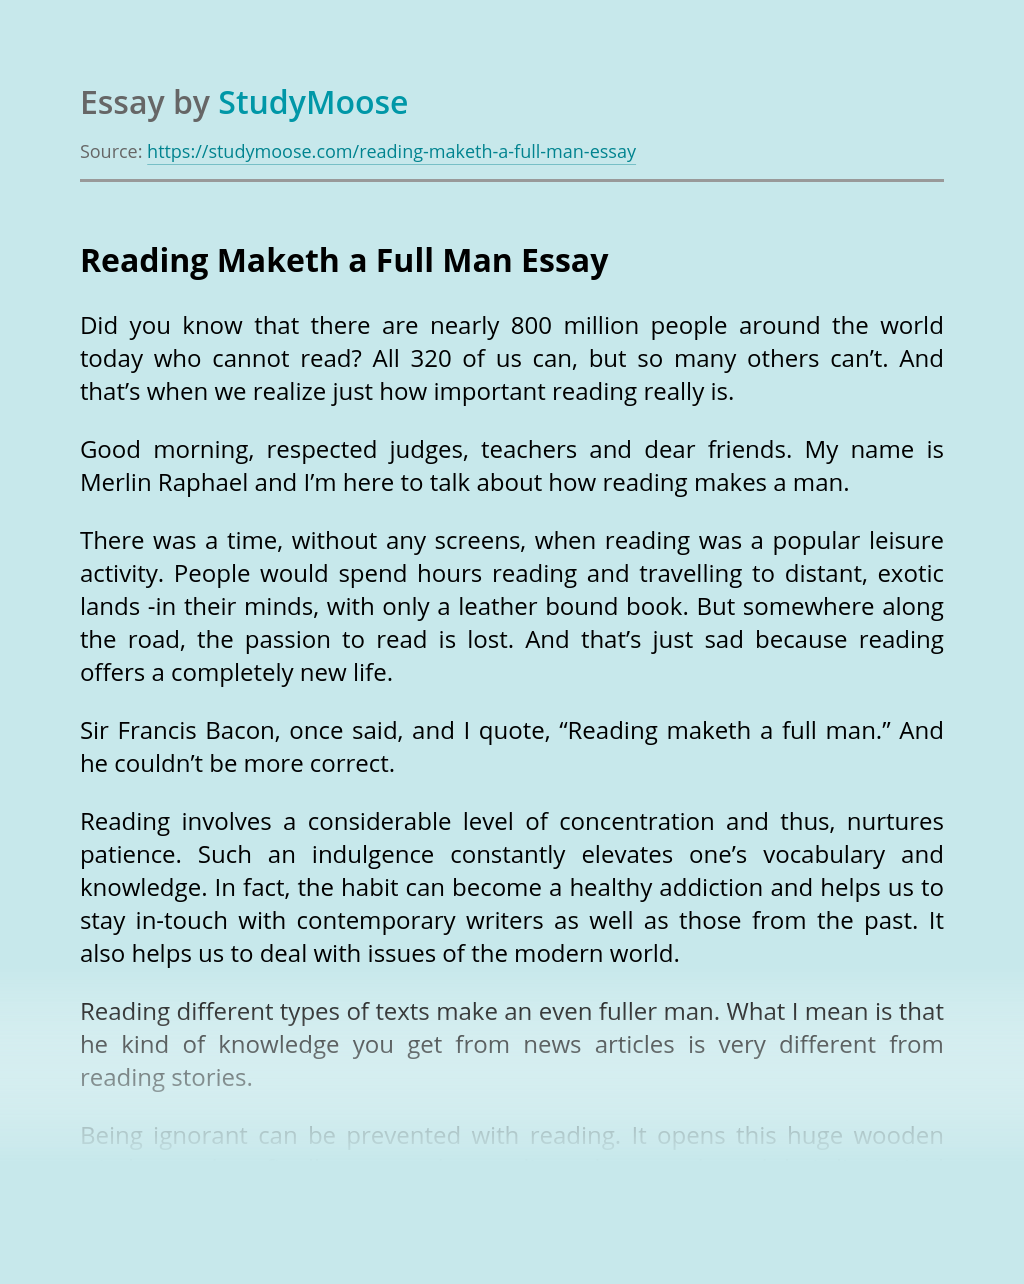 Reading Maketh a Full Man